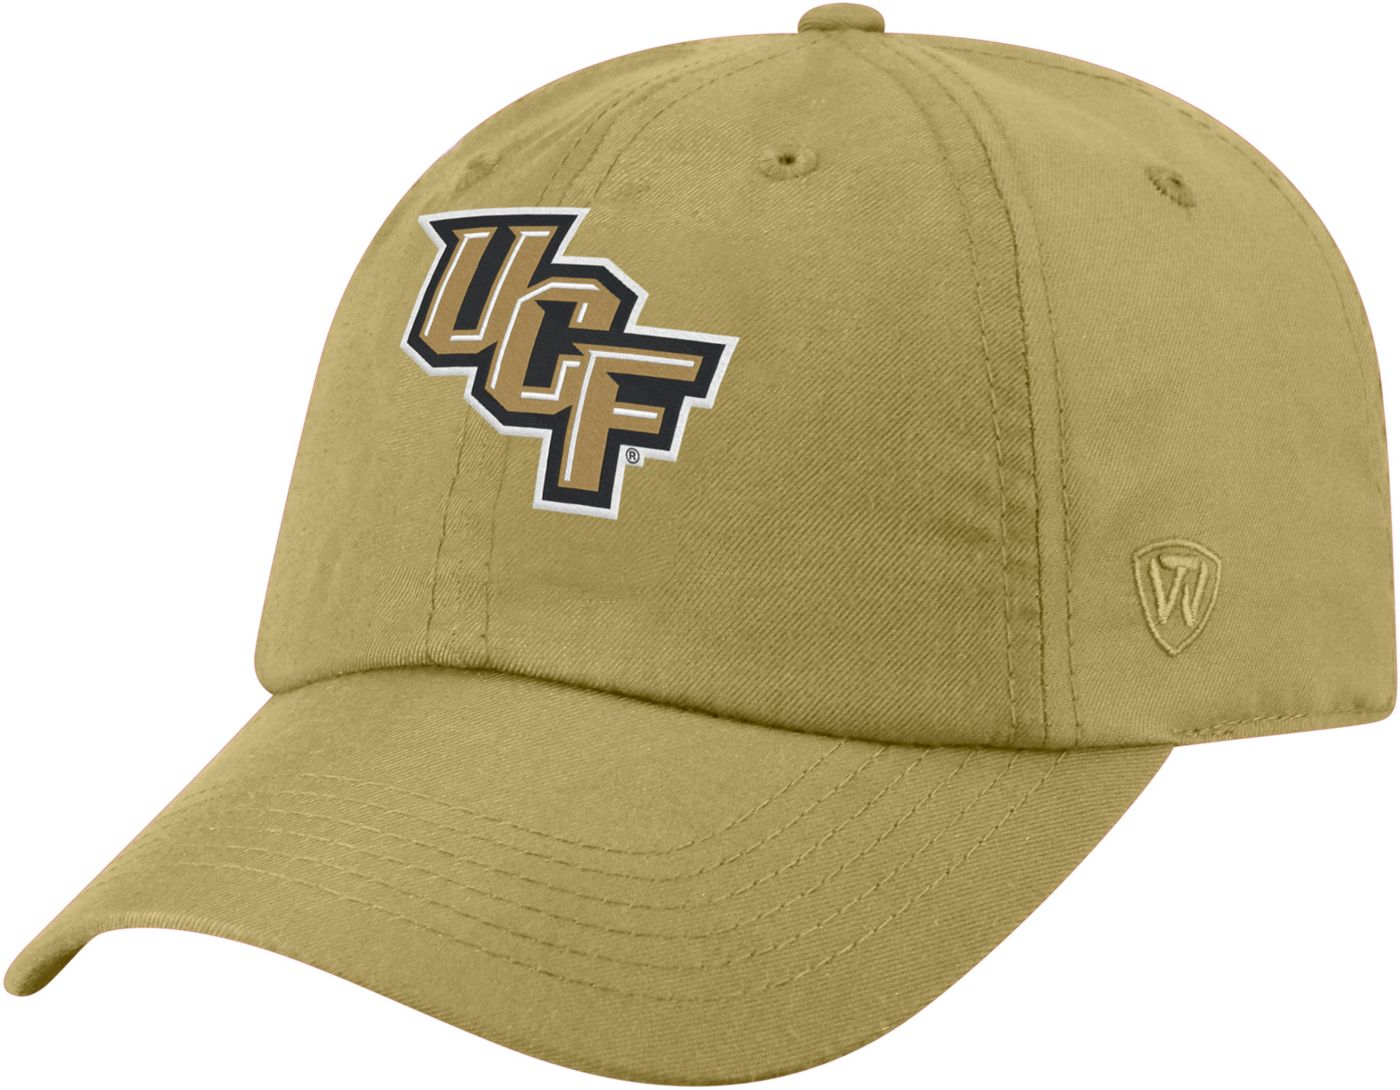 Top of the World Men's UCF Knights Gold Staple Adjustable Hat